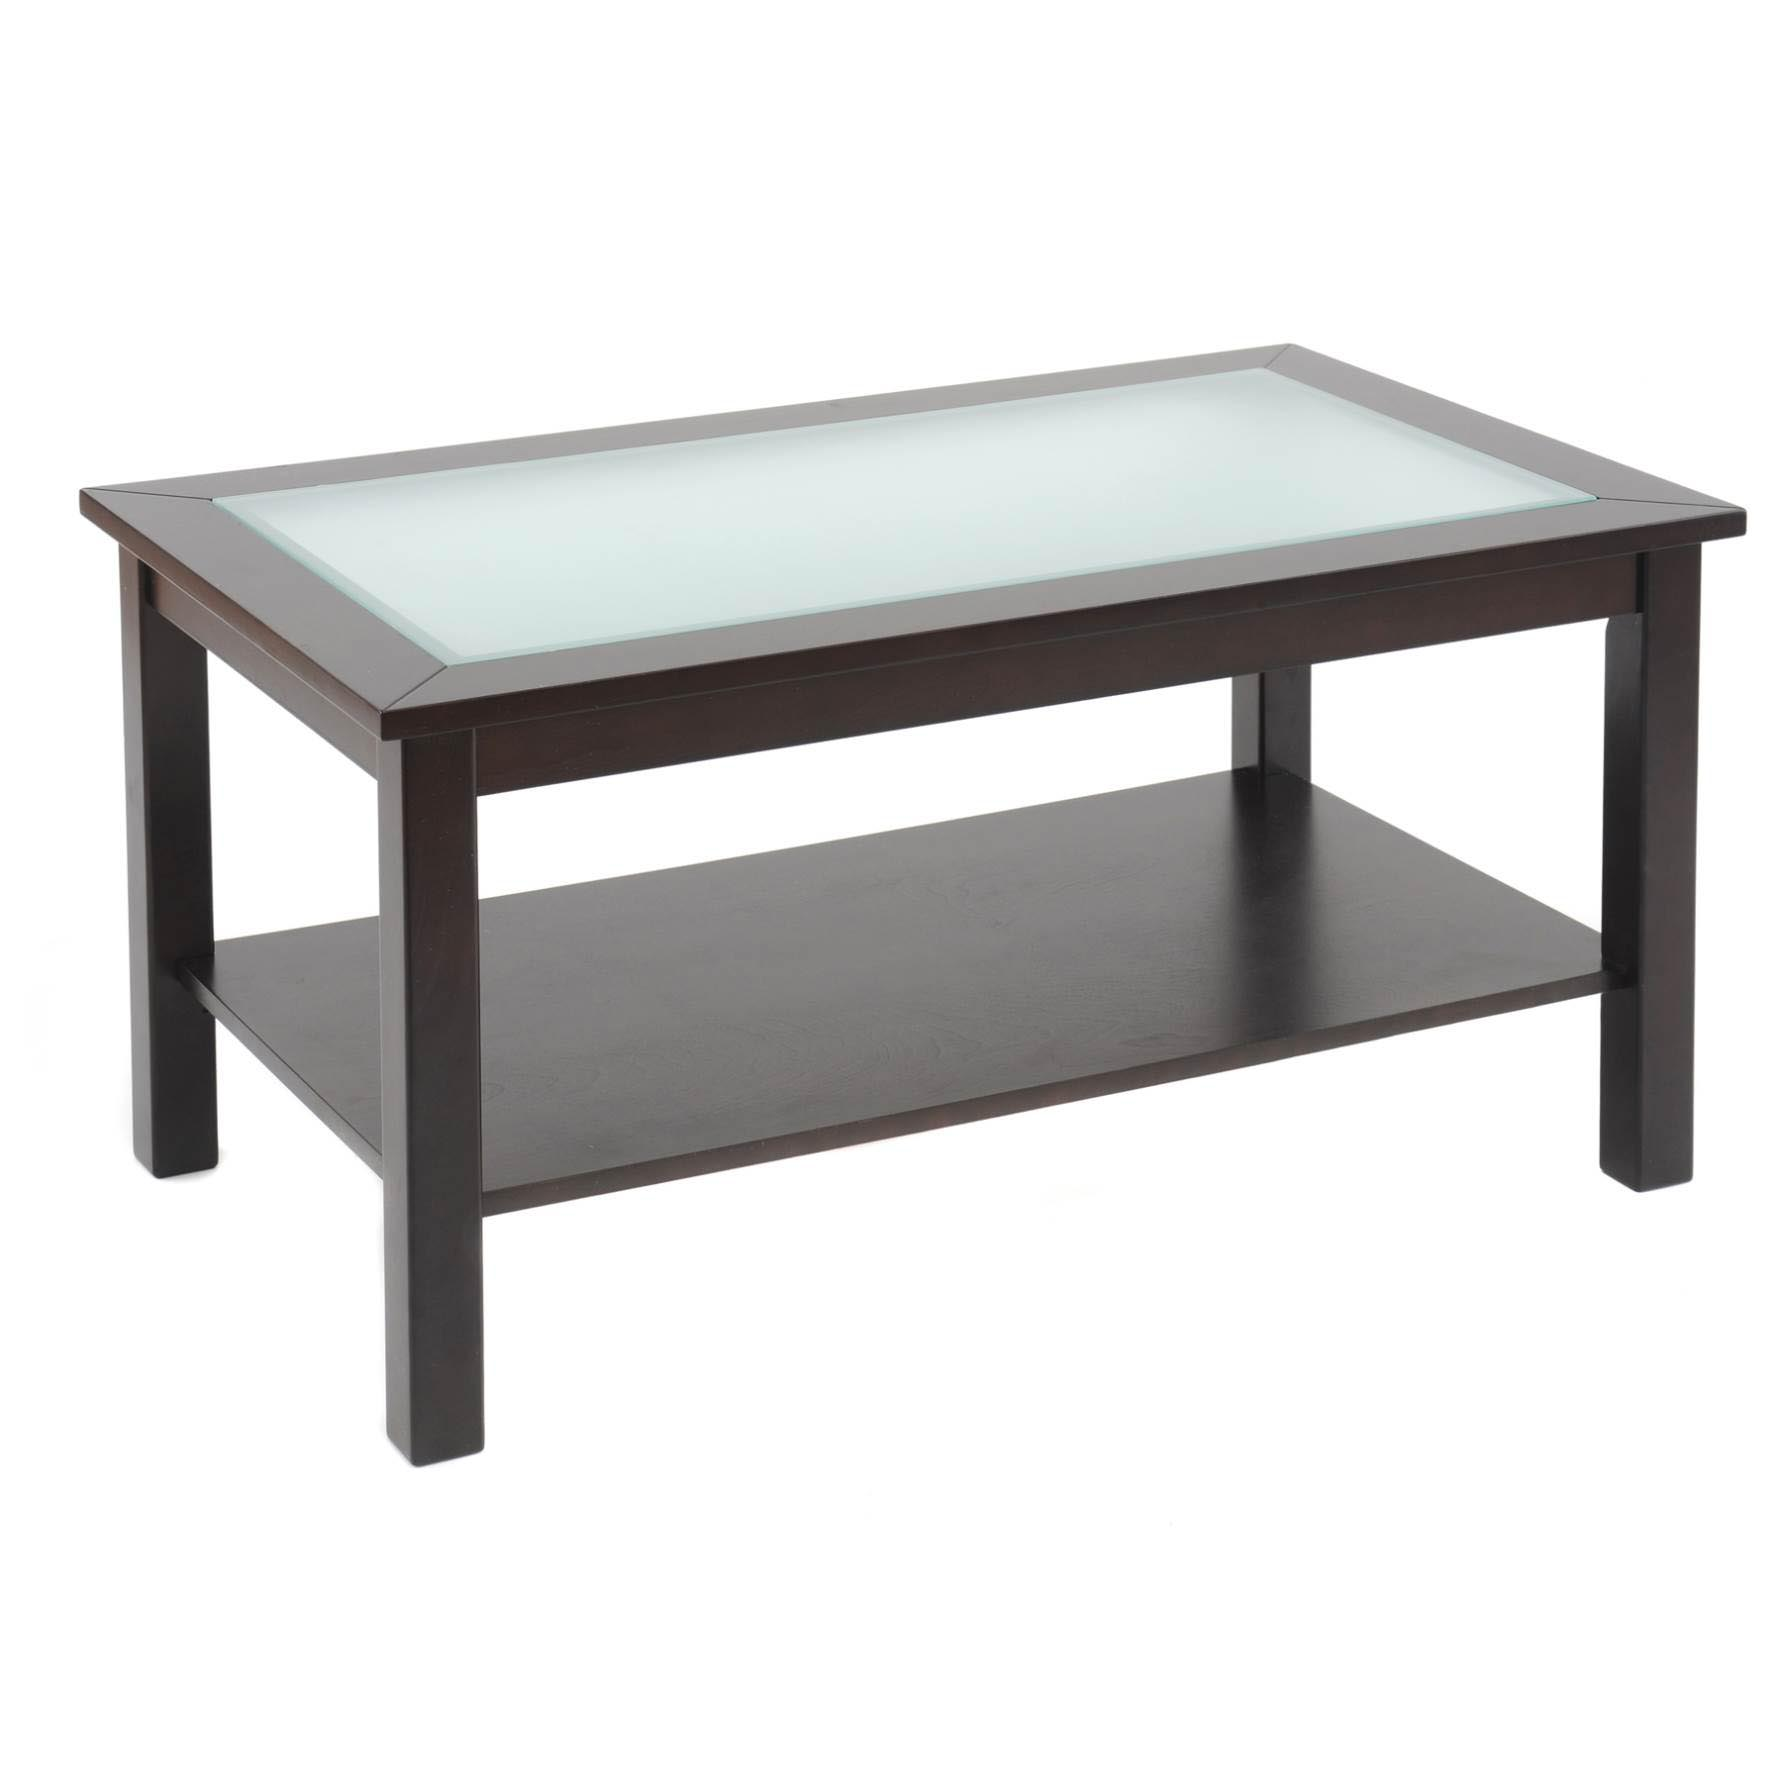 Couchtisch Glas Ablage Glass Display Coffee Table Ikea | Coffee Table Design Ideas